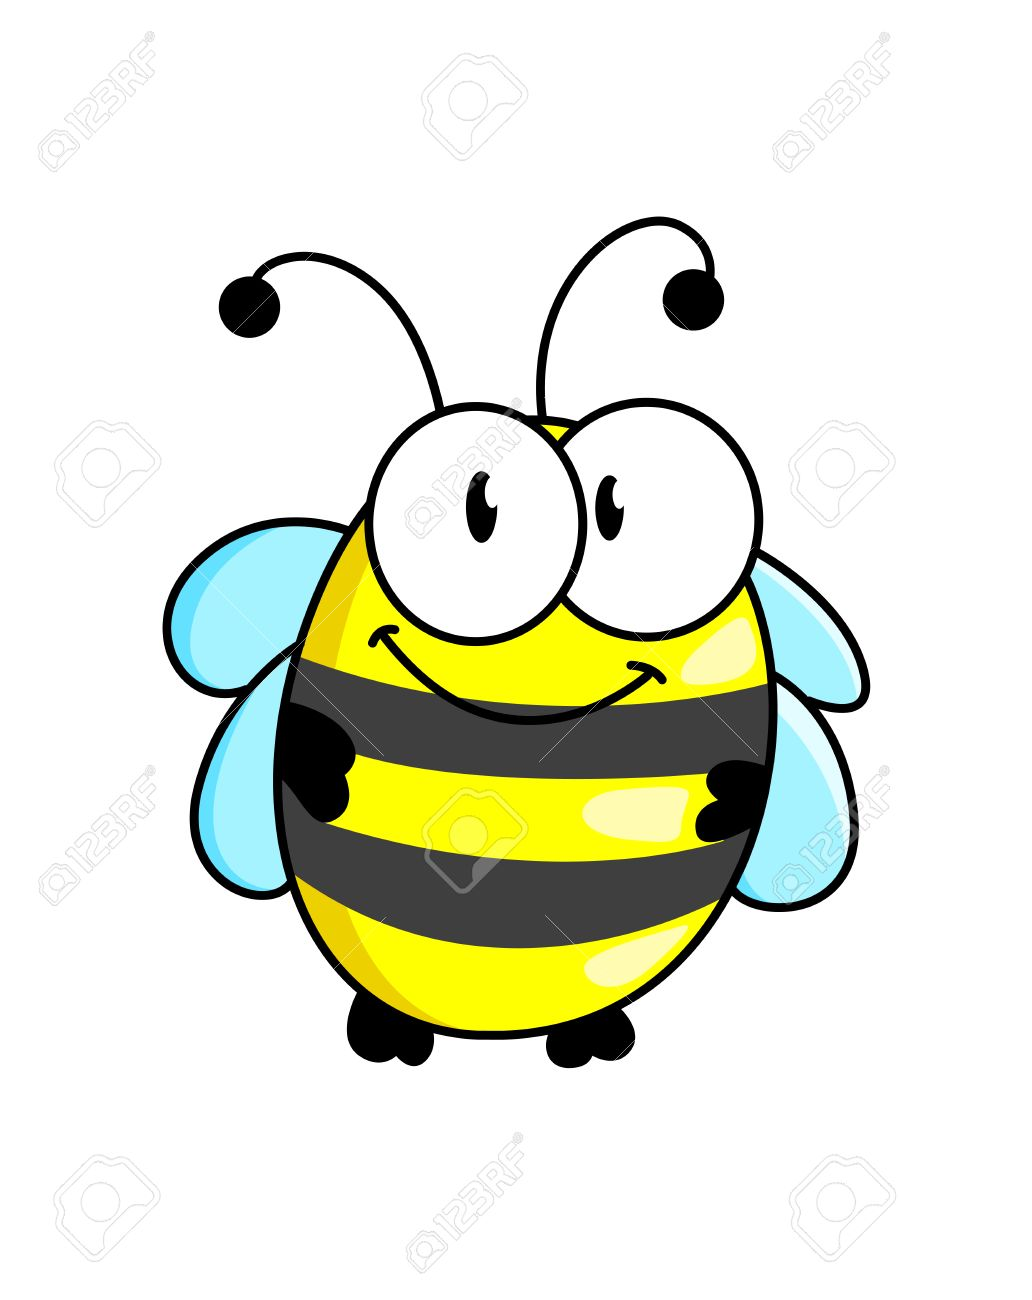 1032x1300 Excellent Cartoon Bumble Bees Ideas